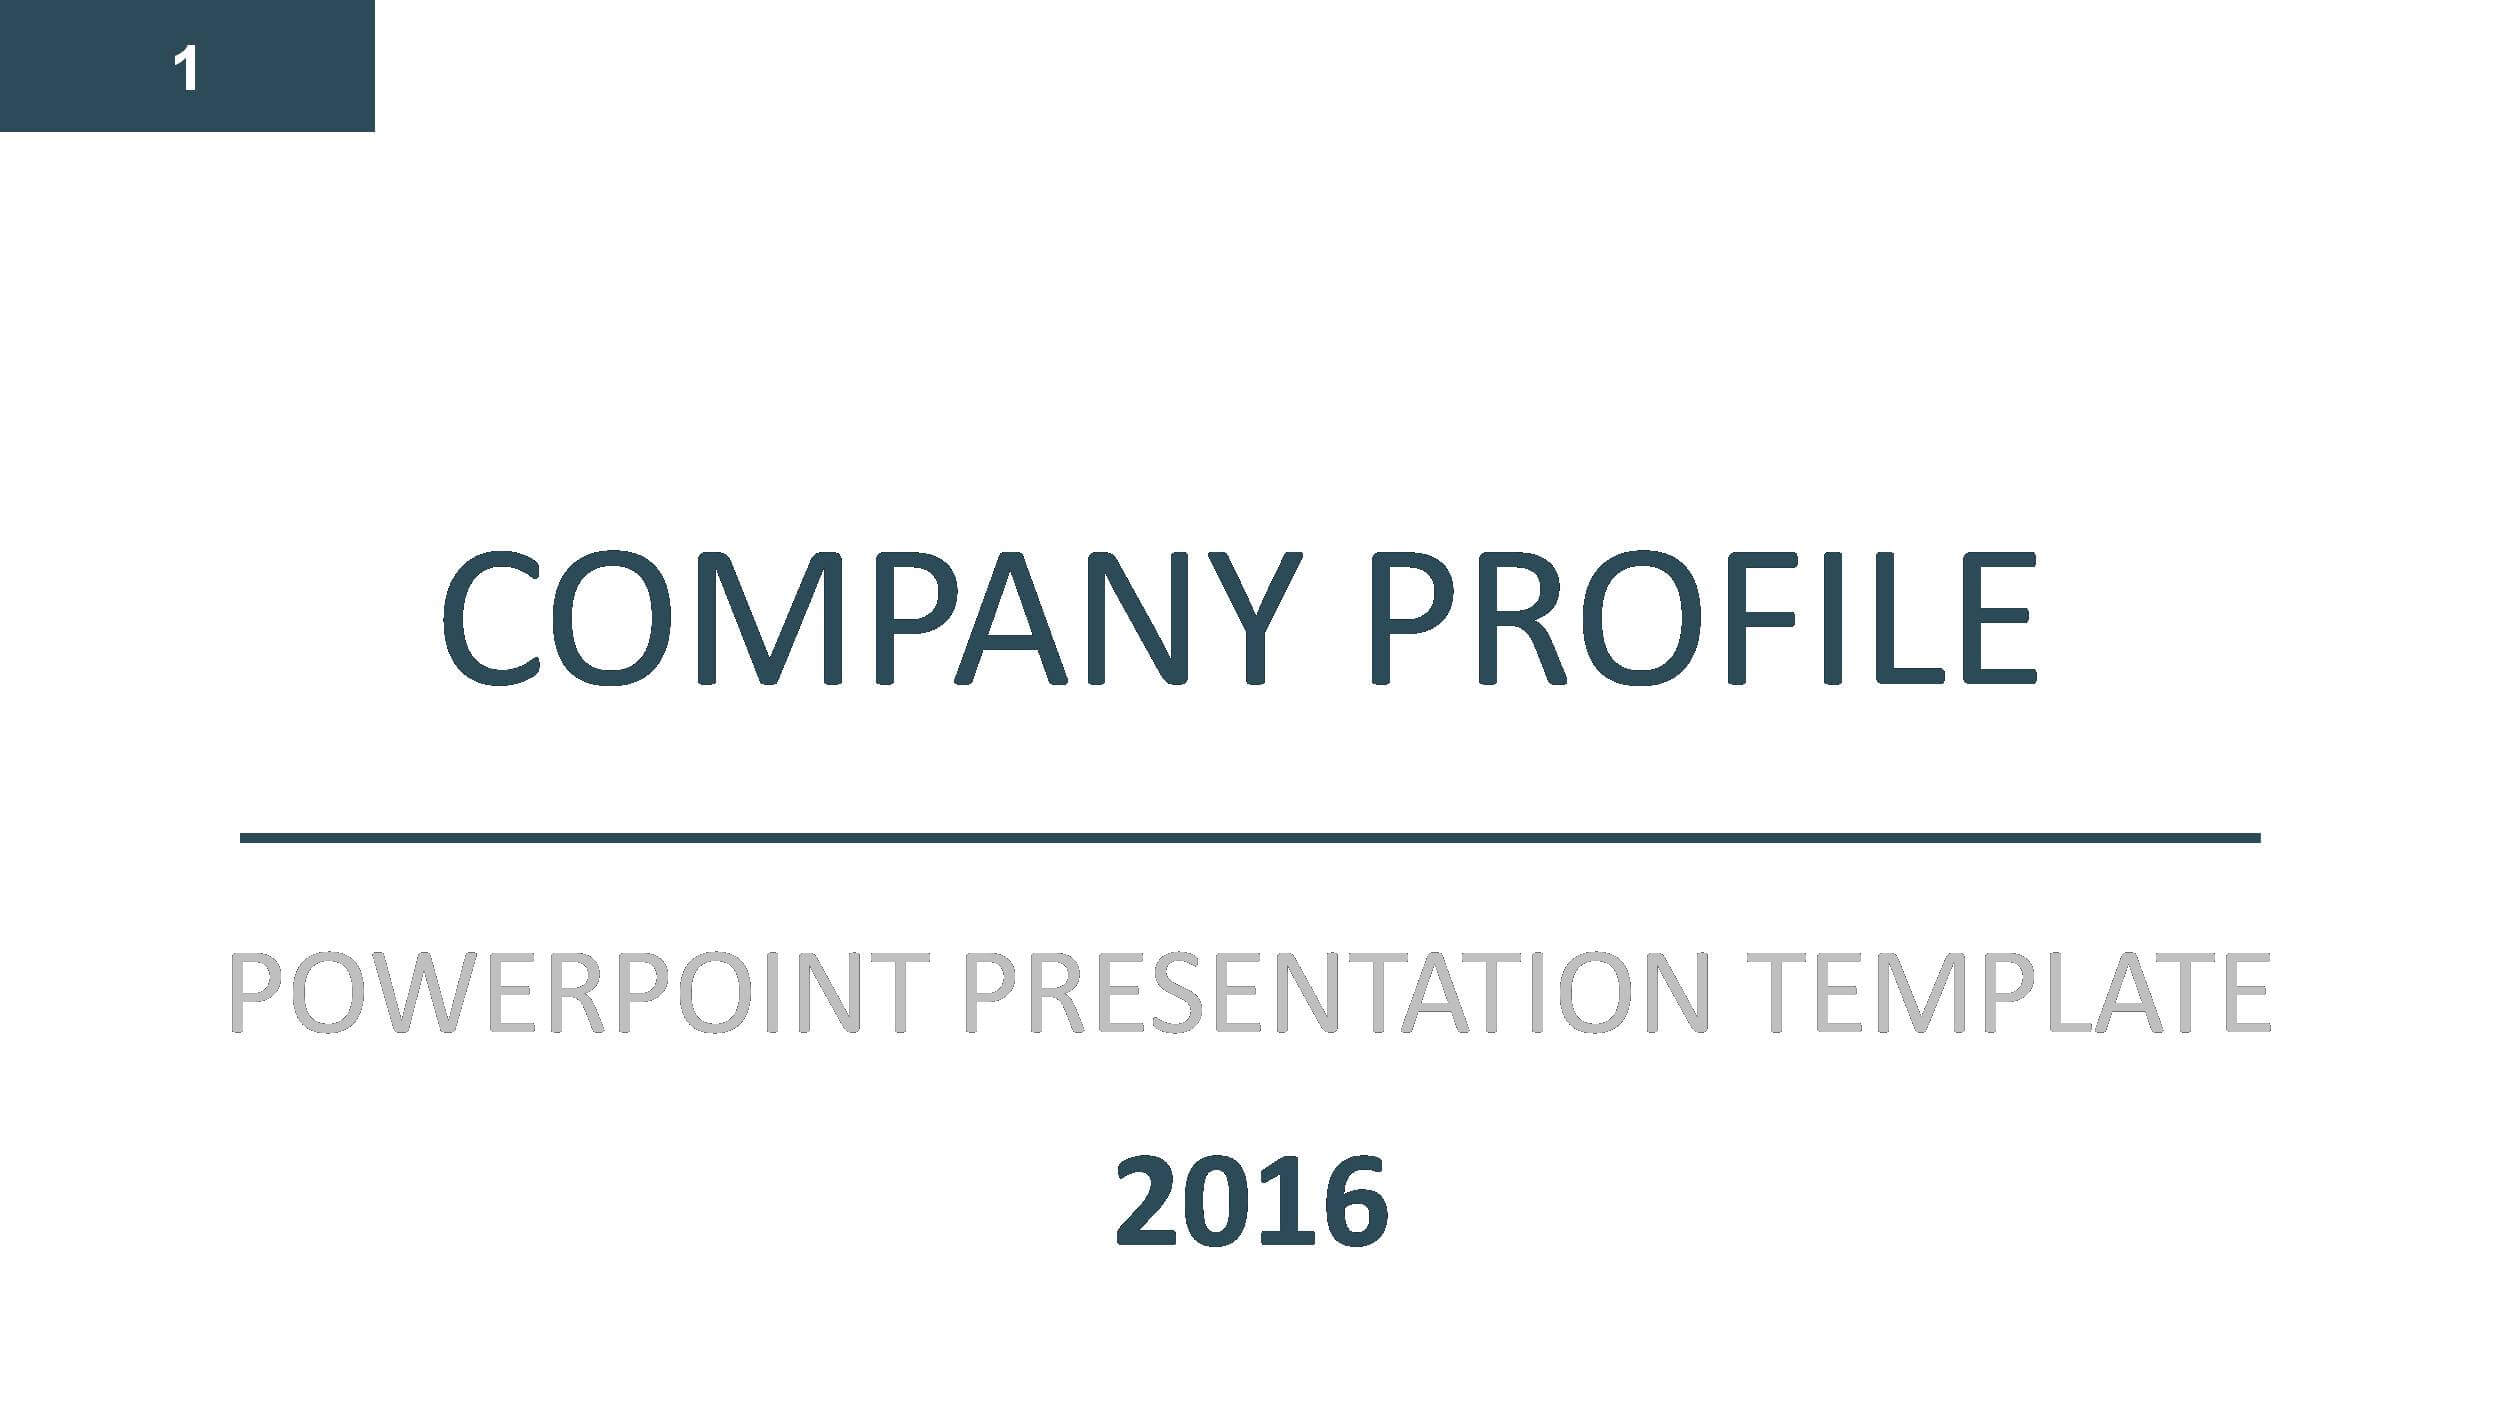 Company Profile PowerPoint Presentation Template (1)